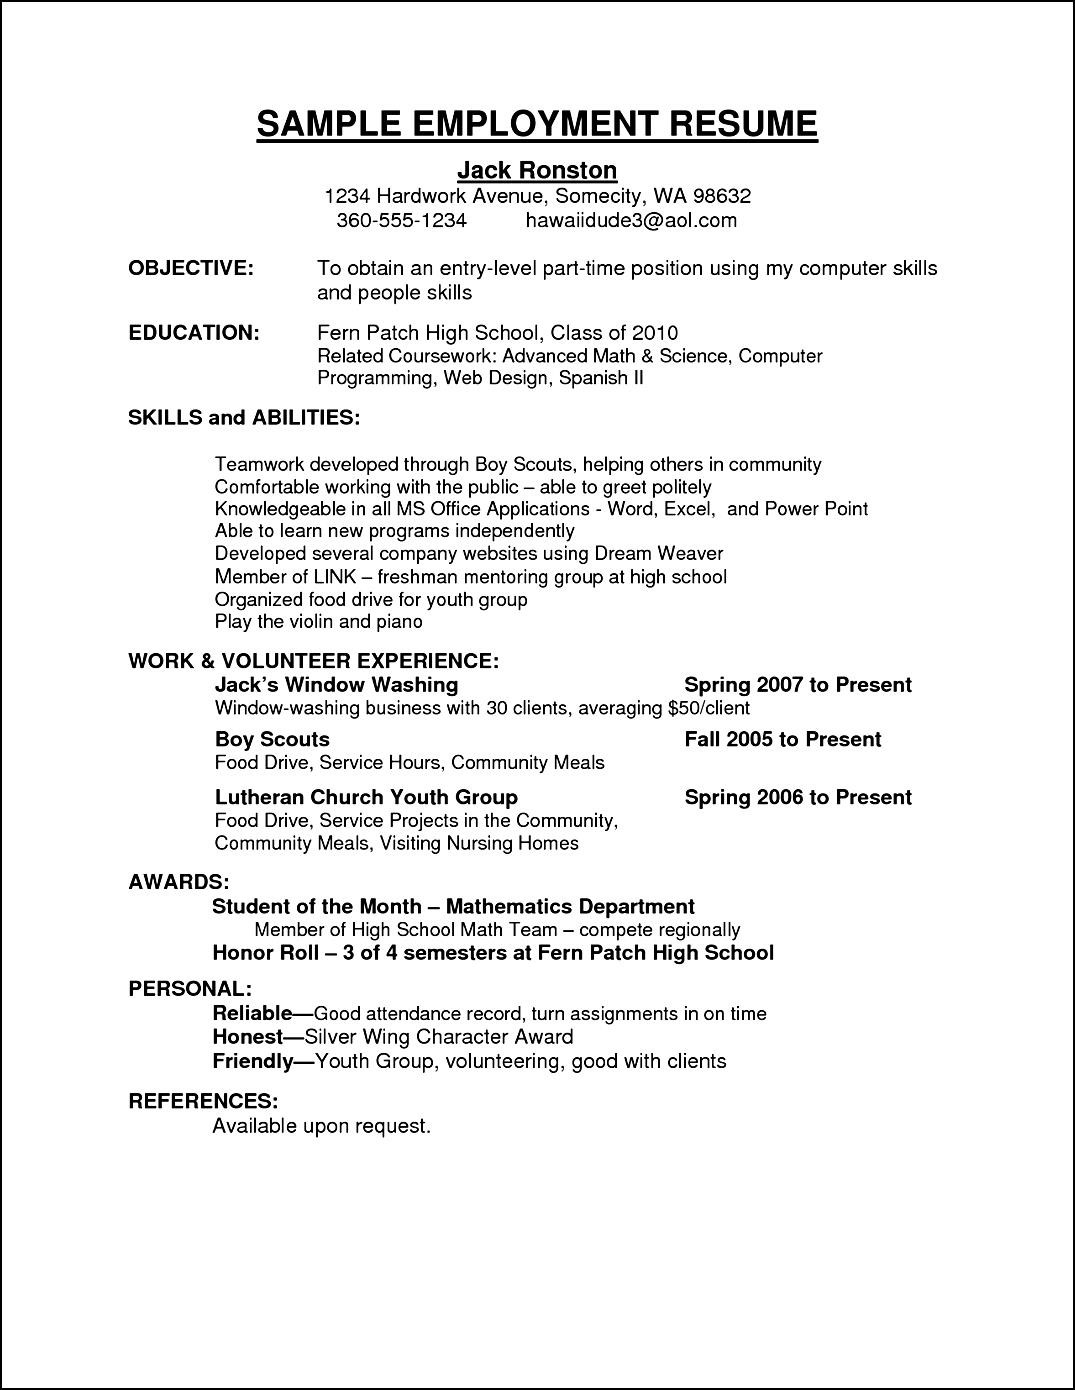 Examples Of Cv And Resume Sample Curriculum Vitae For Employment Free Samples